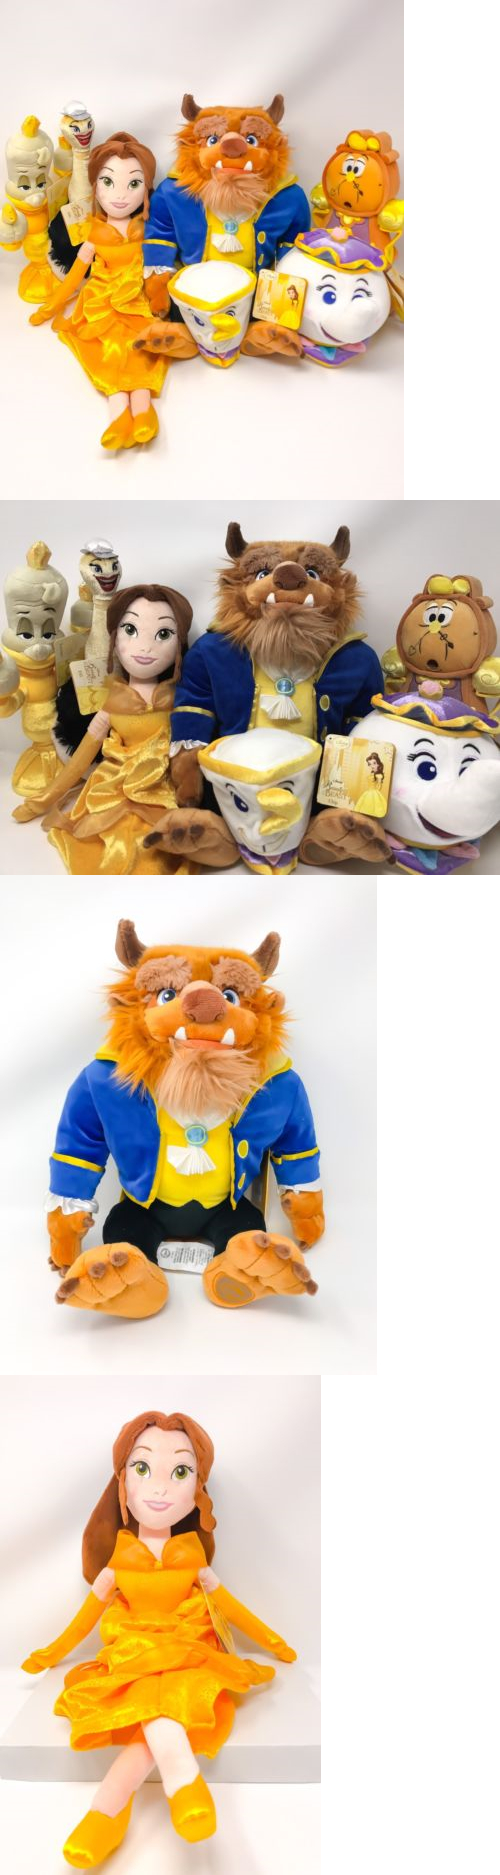 Beauty and the Beast 44033: Disney S Beauty And The Beast Deluxe Plush Complete Set Of 7 (New) Belle, Beast, -> BUY IT NOW ONLY: $153 on eBay!